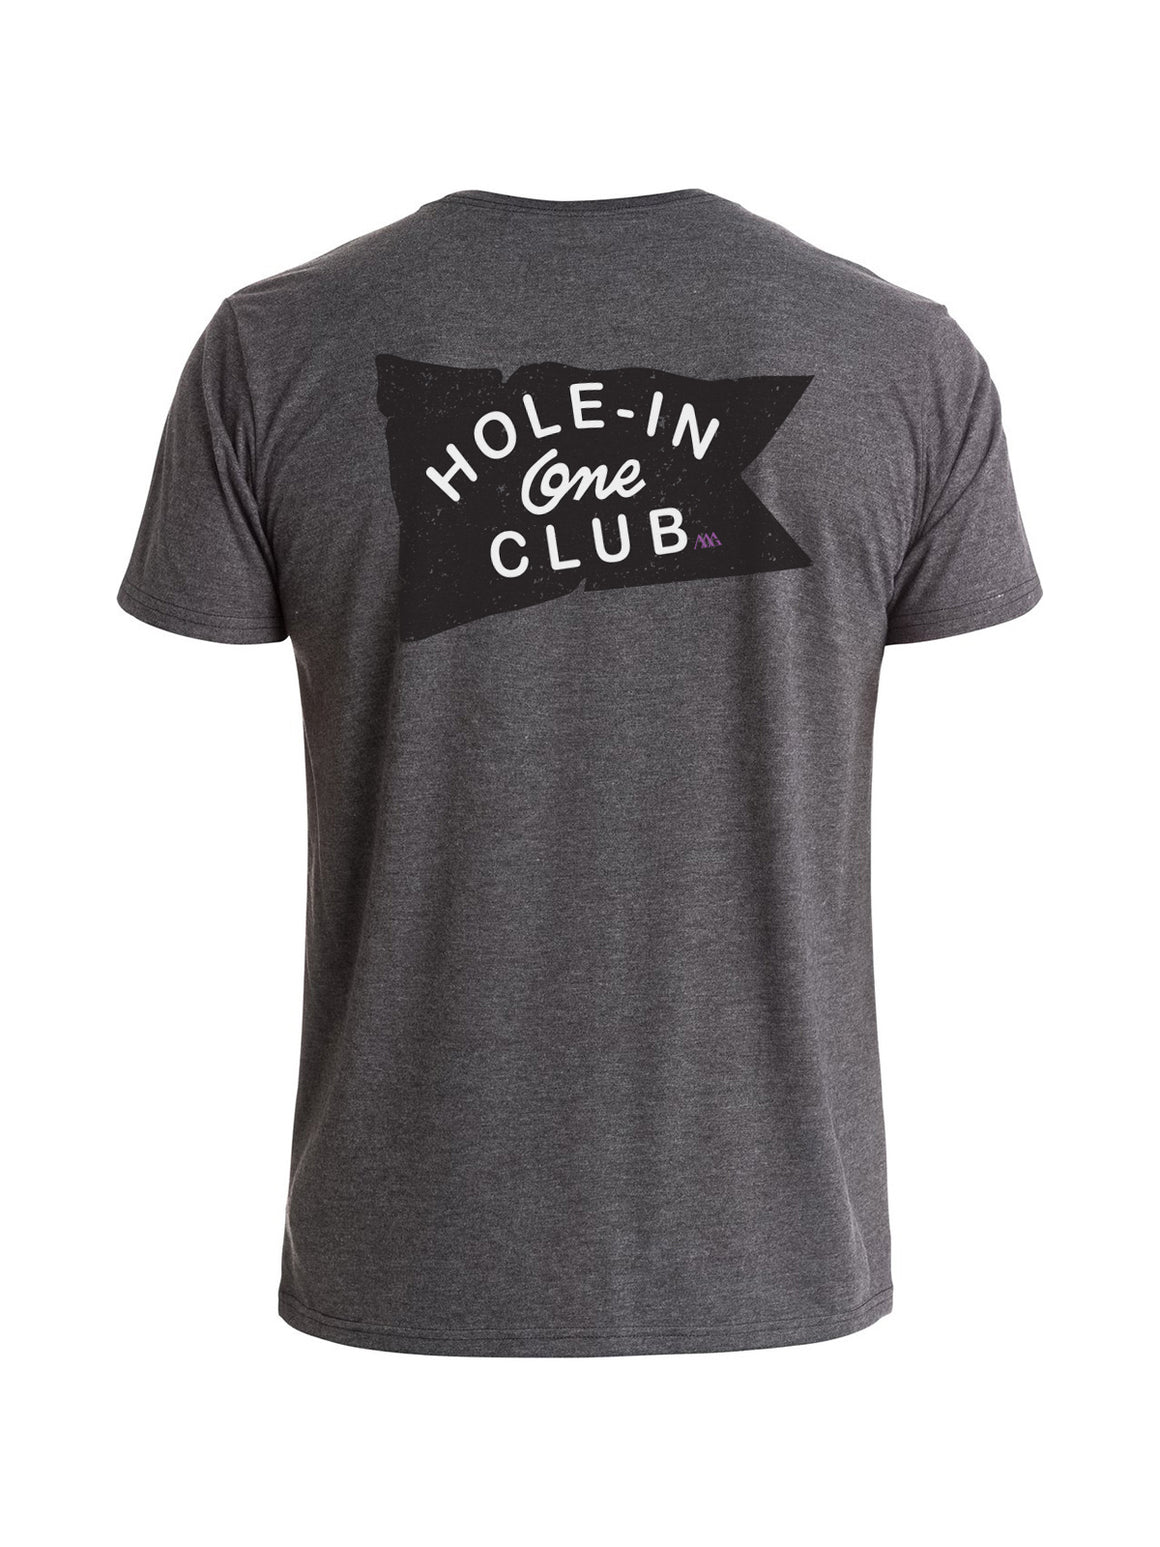 Hole-In-One Club Tee Shirt - Charcoal Heather (Black / Salt)